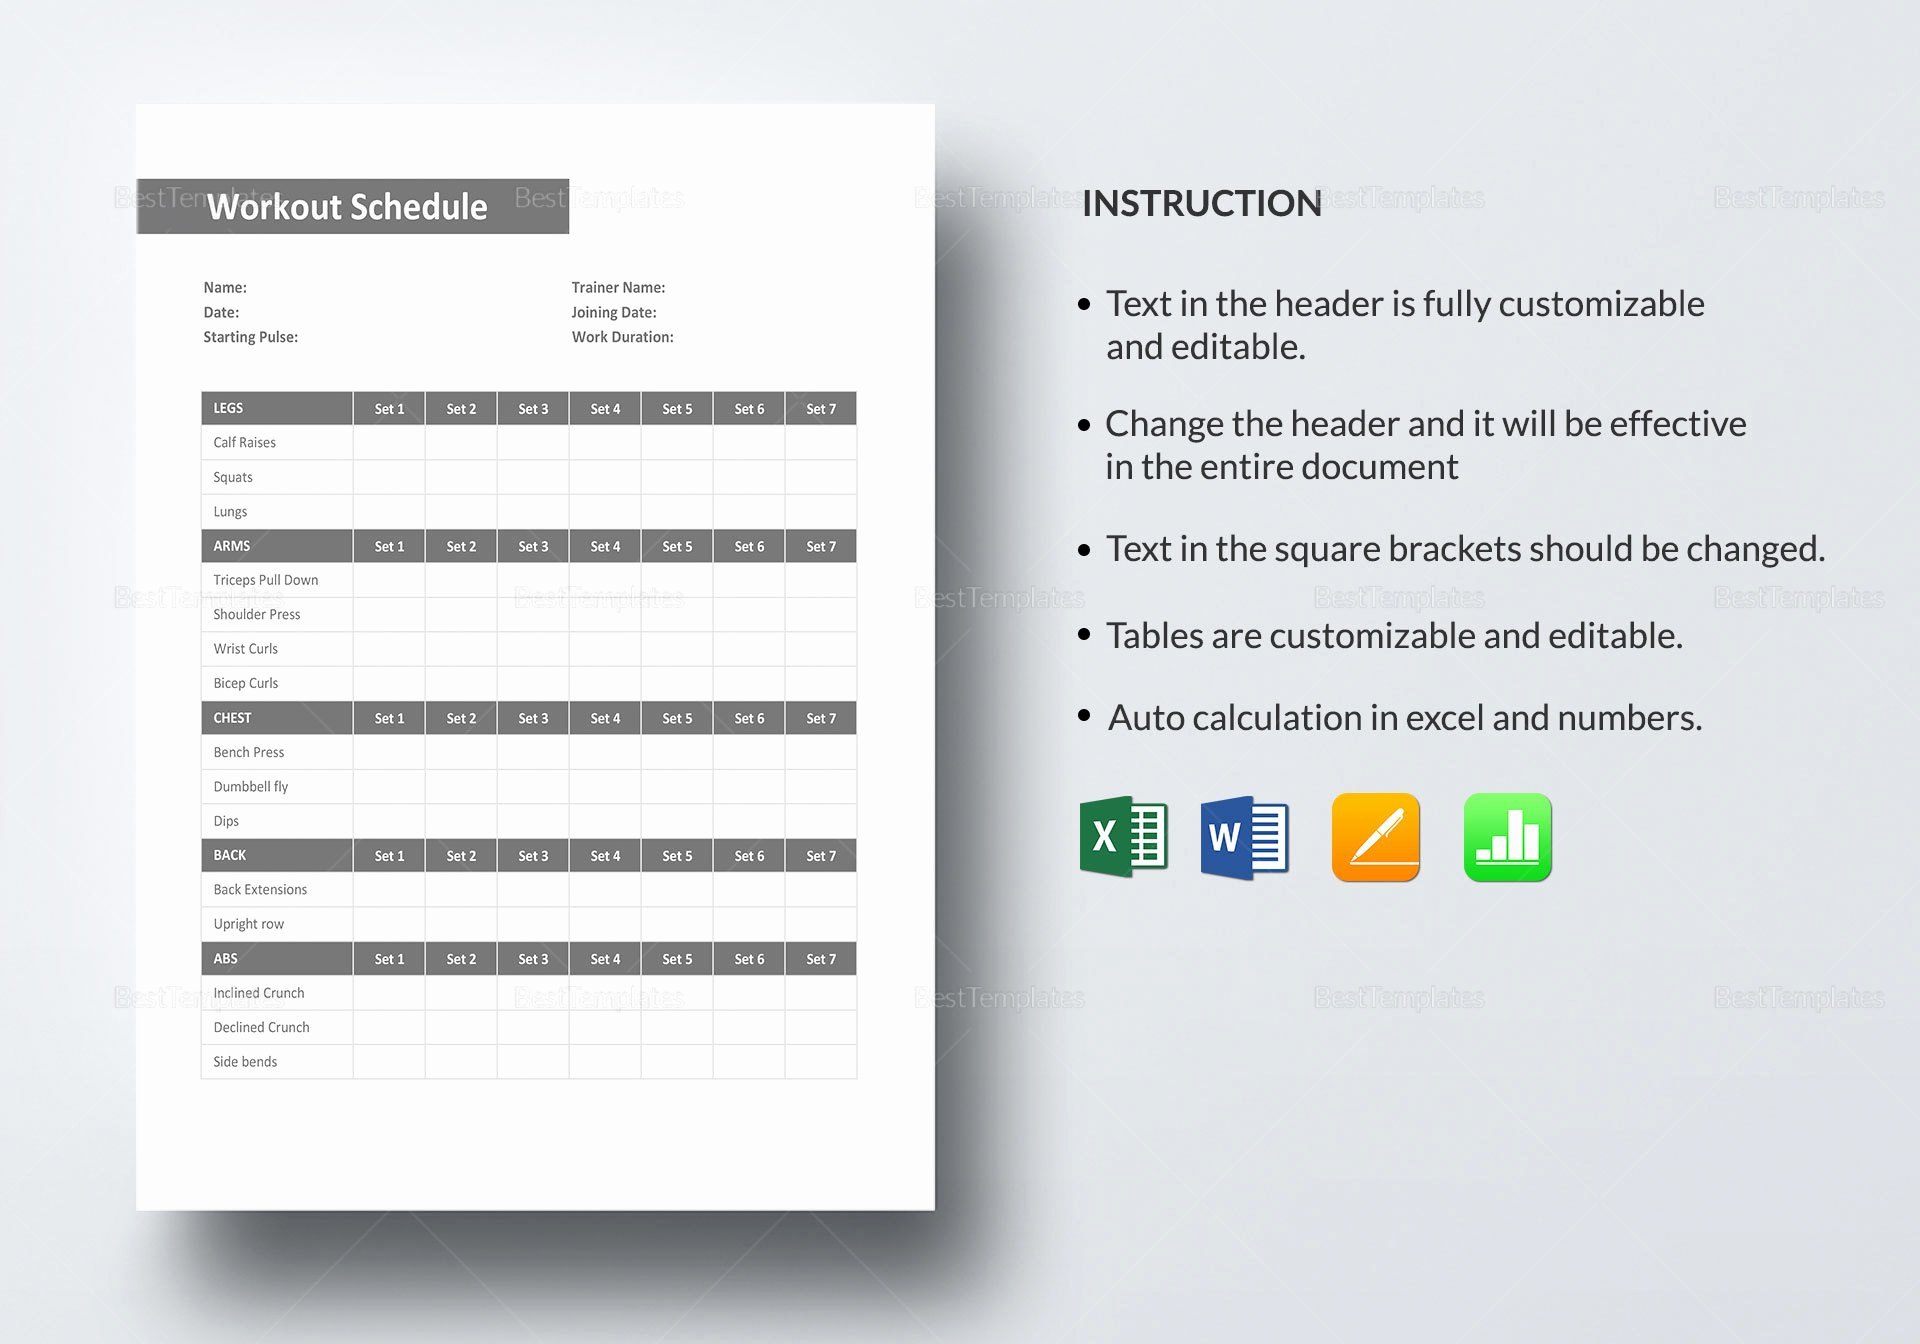 Workout Schedule Template Excel New Weekly Workout Schedule Template In Word Excel Apple Pages Numbers